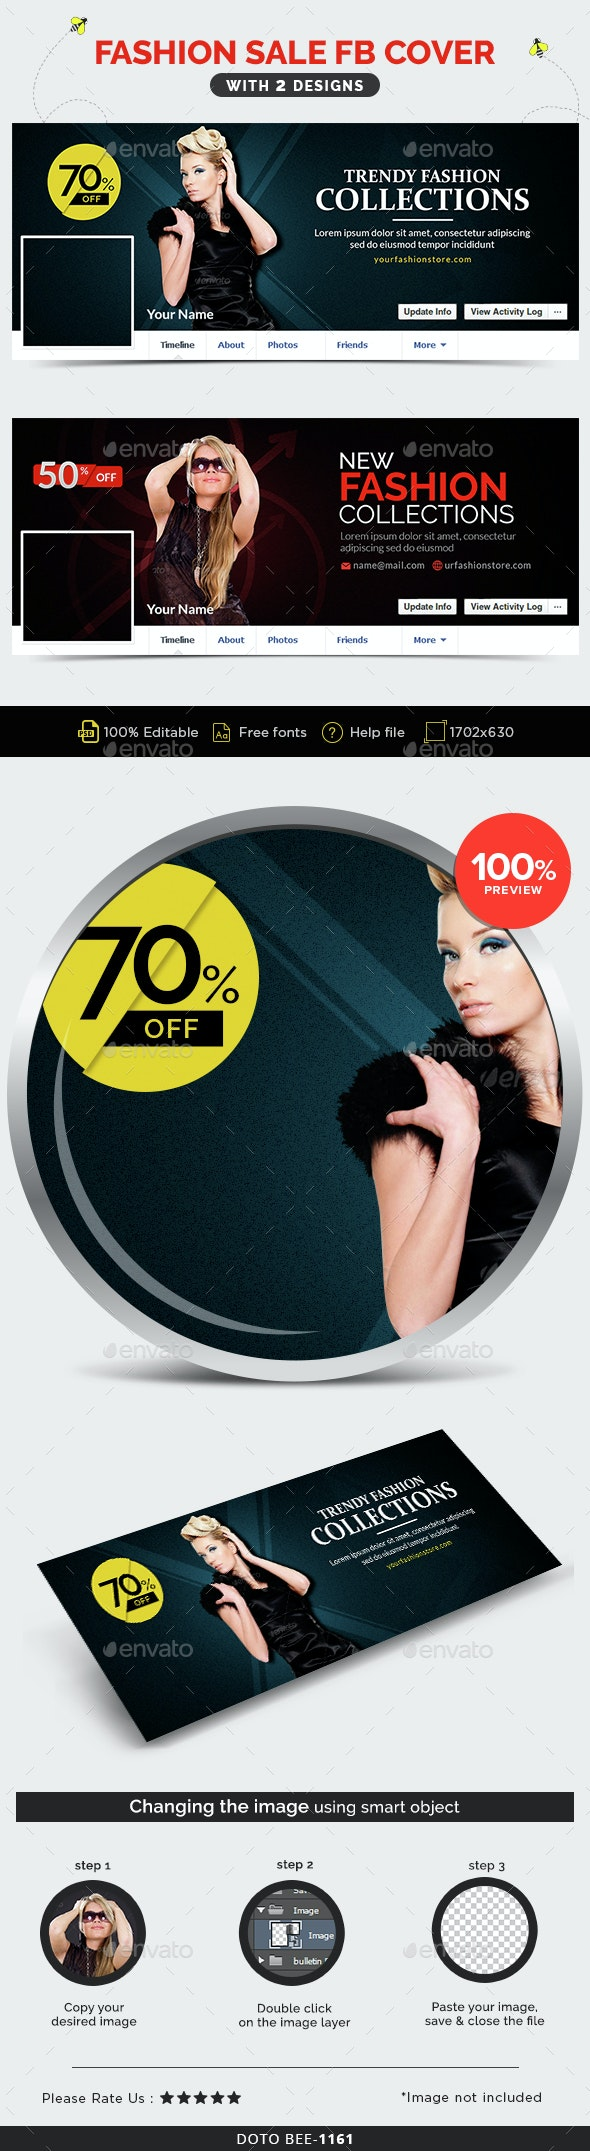 Fashion Sale Facebook Covers - 2 Designs - Facebook Timeline Covers Social Media